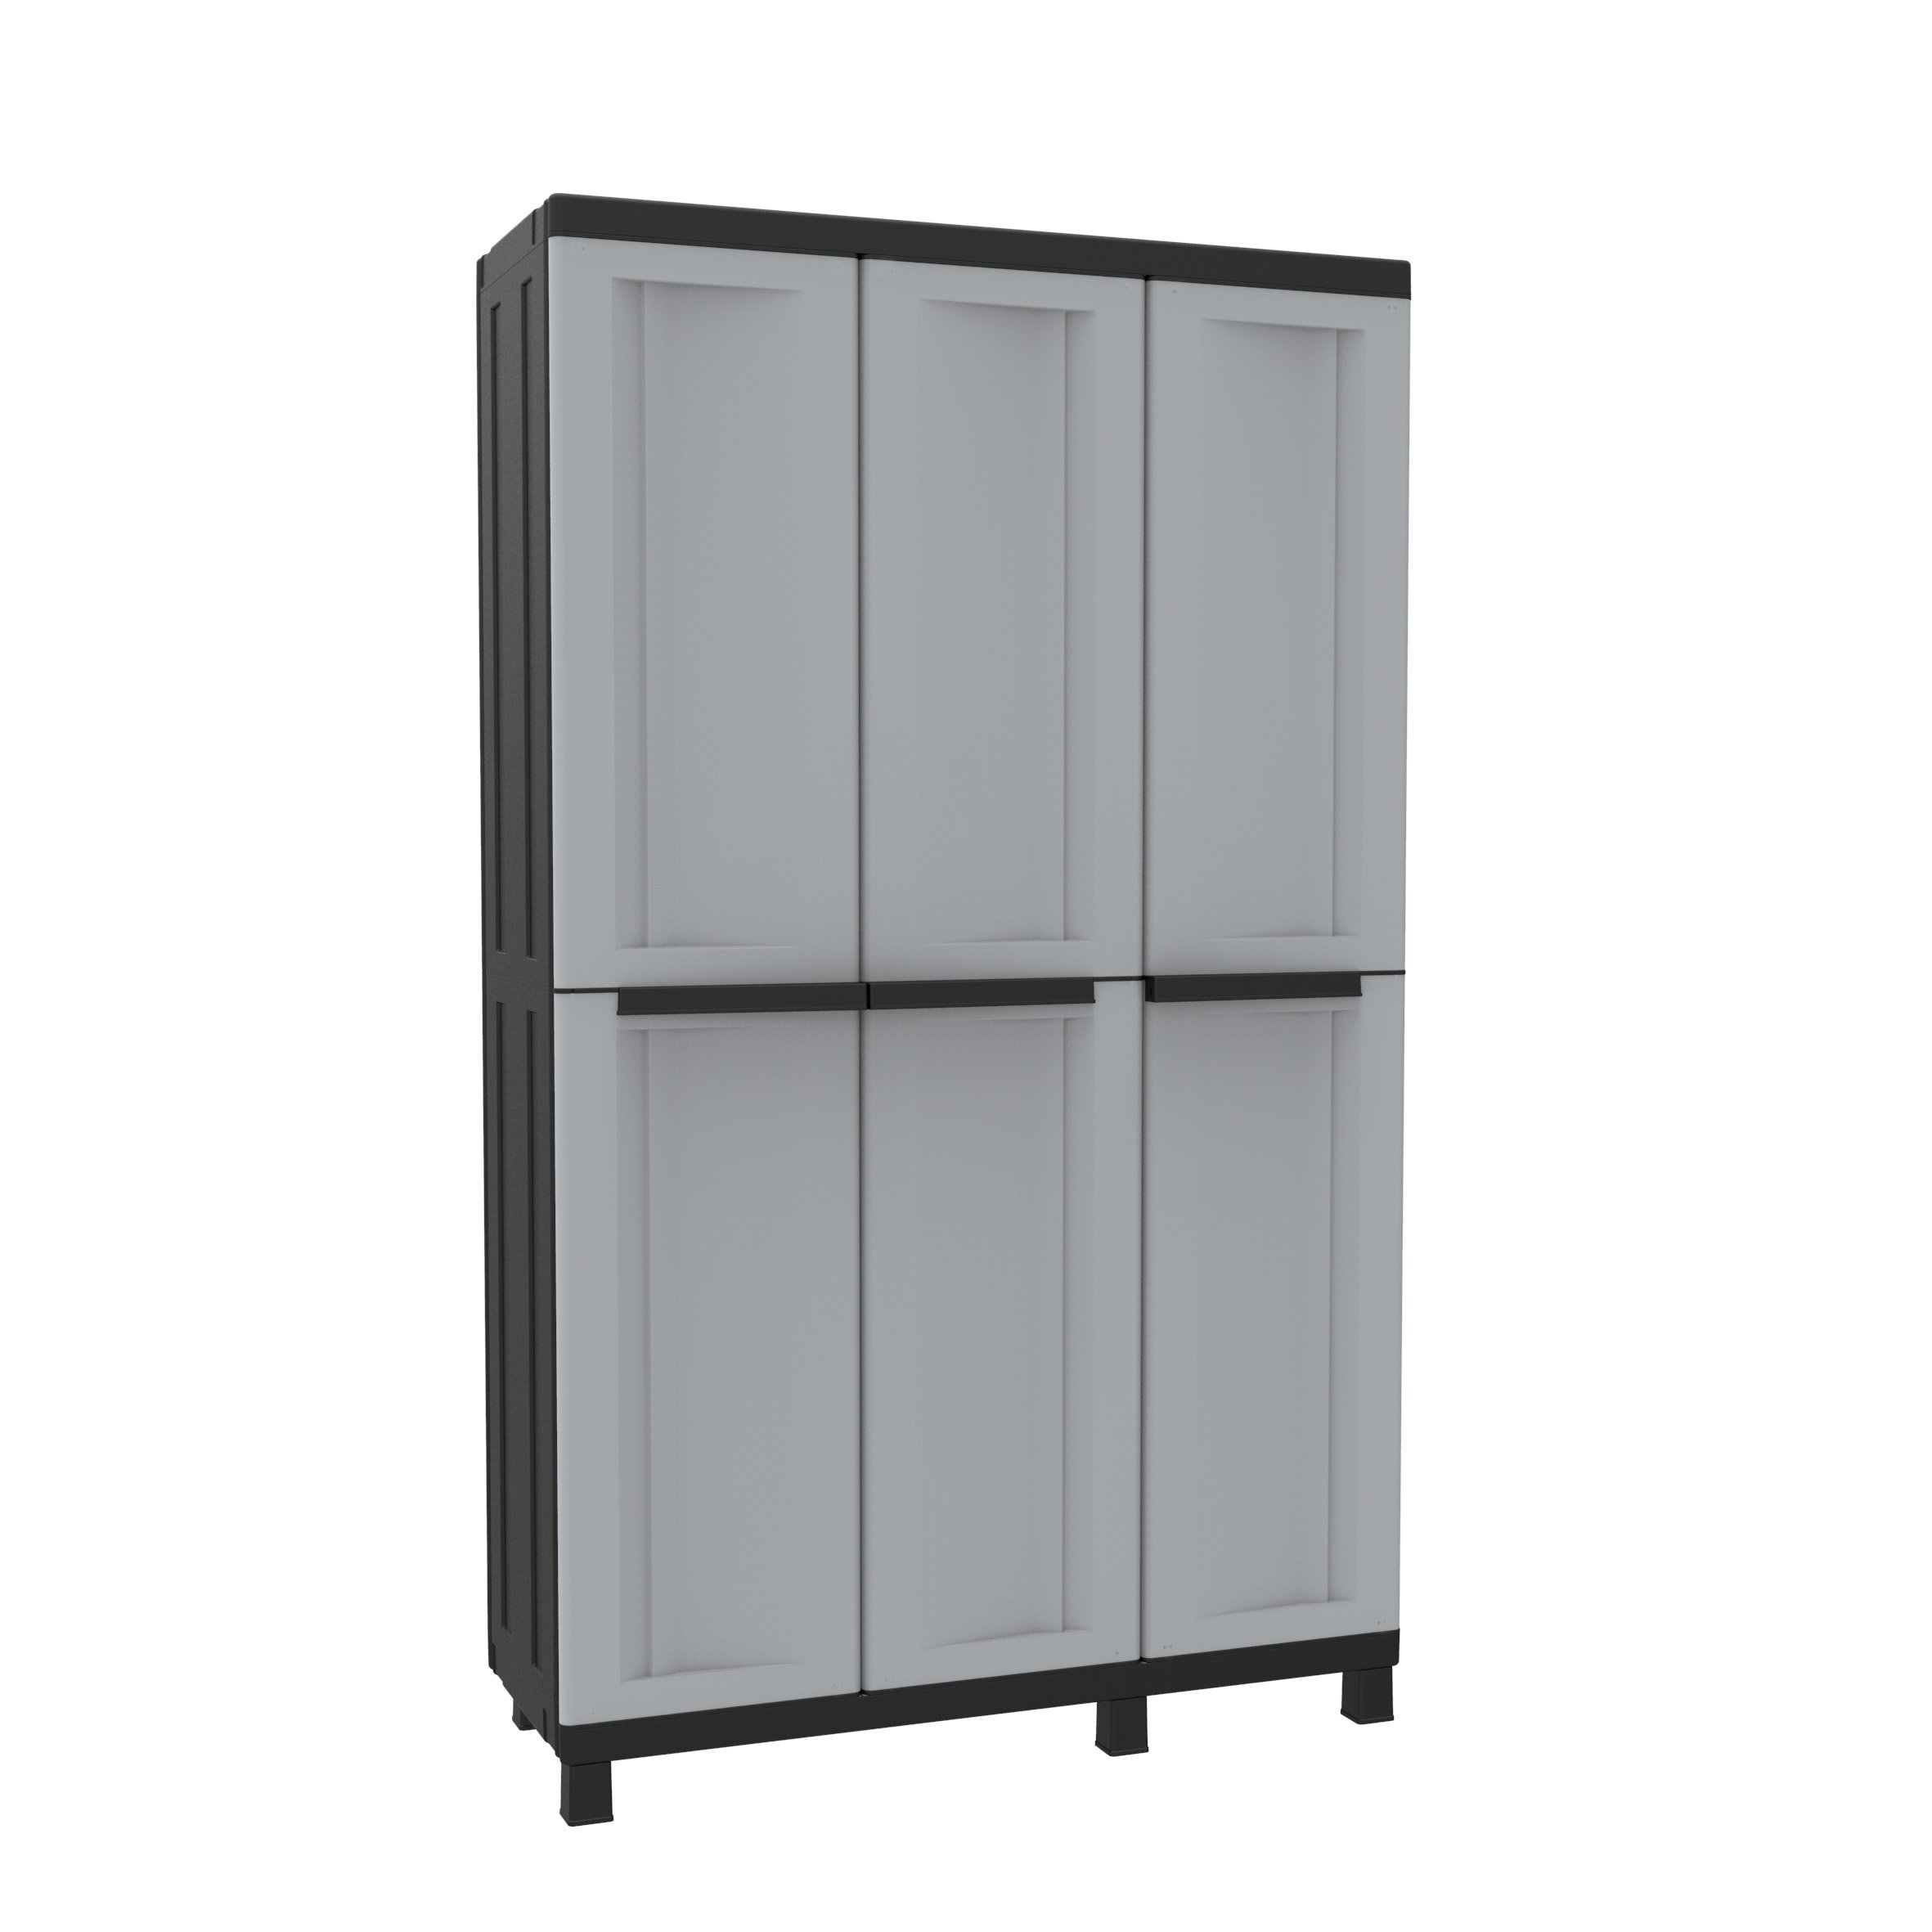 TERRY Plastic Twist Black 102A Tall Wardrobe 3 Doors, Grey/Black, 102 x 39 x 170 cm